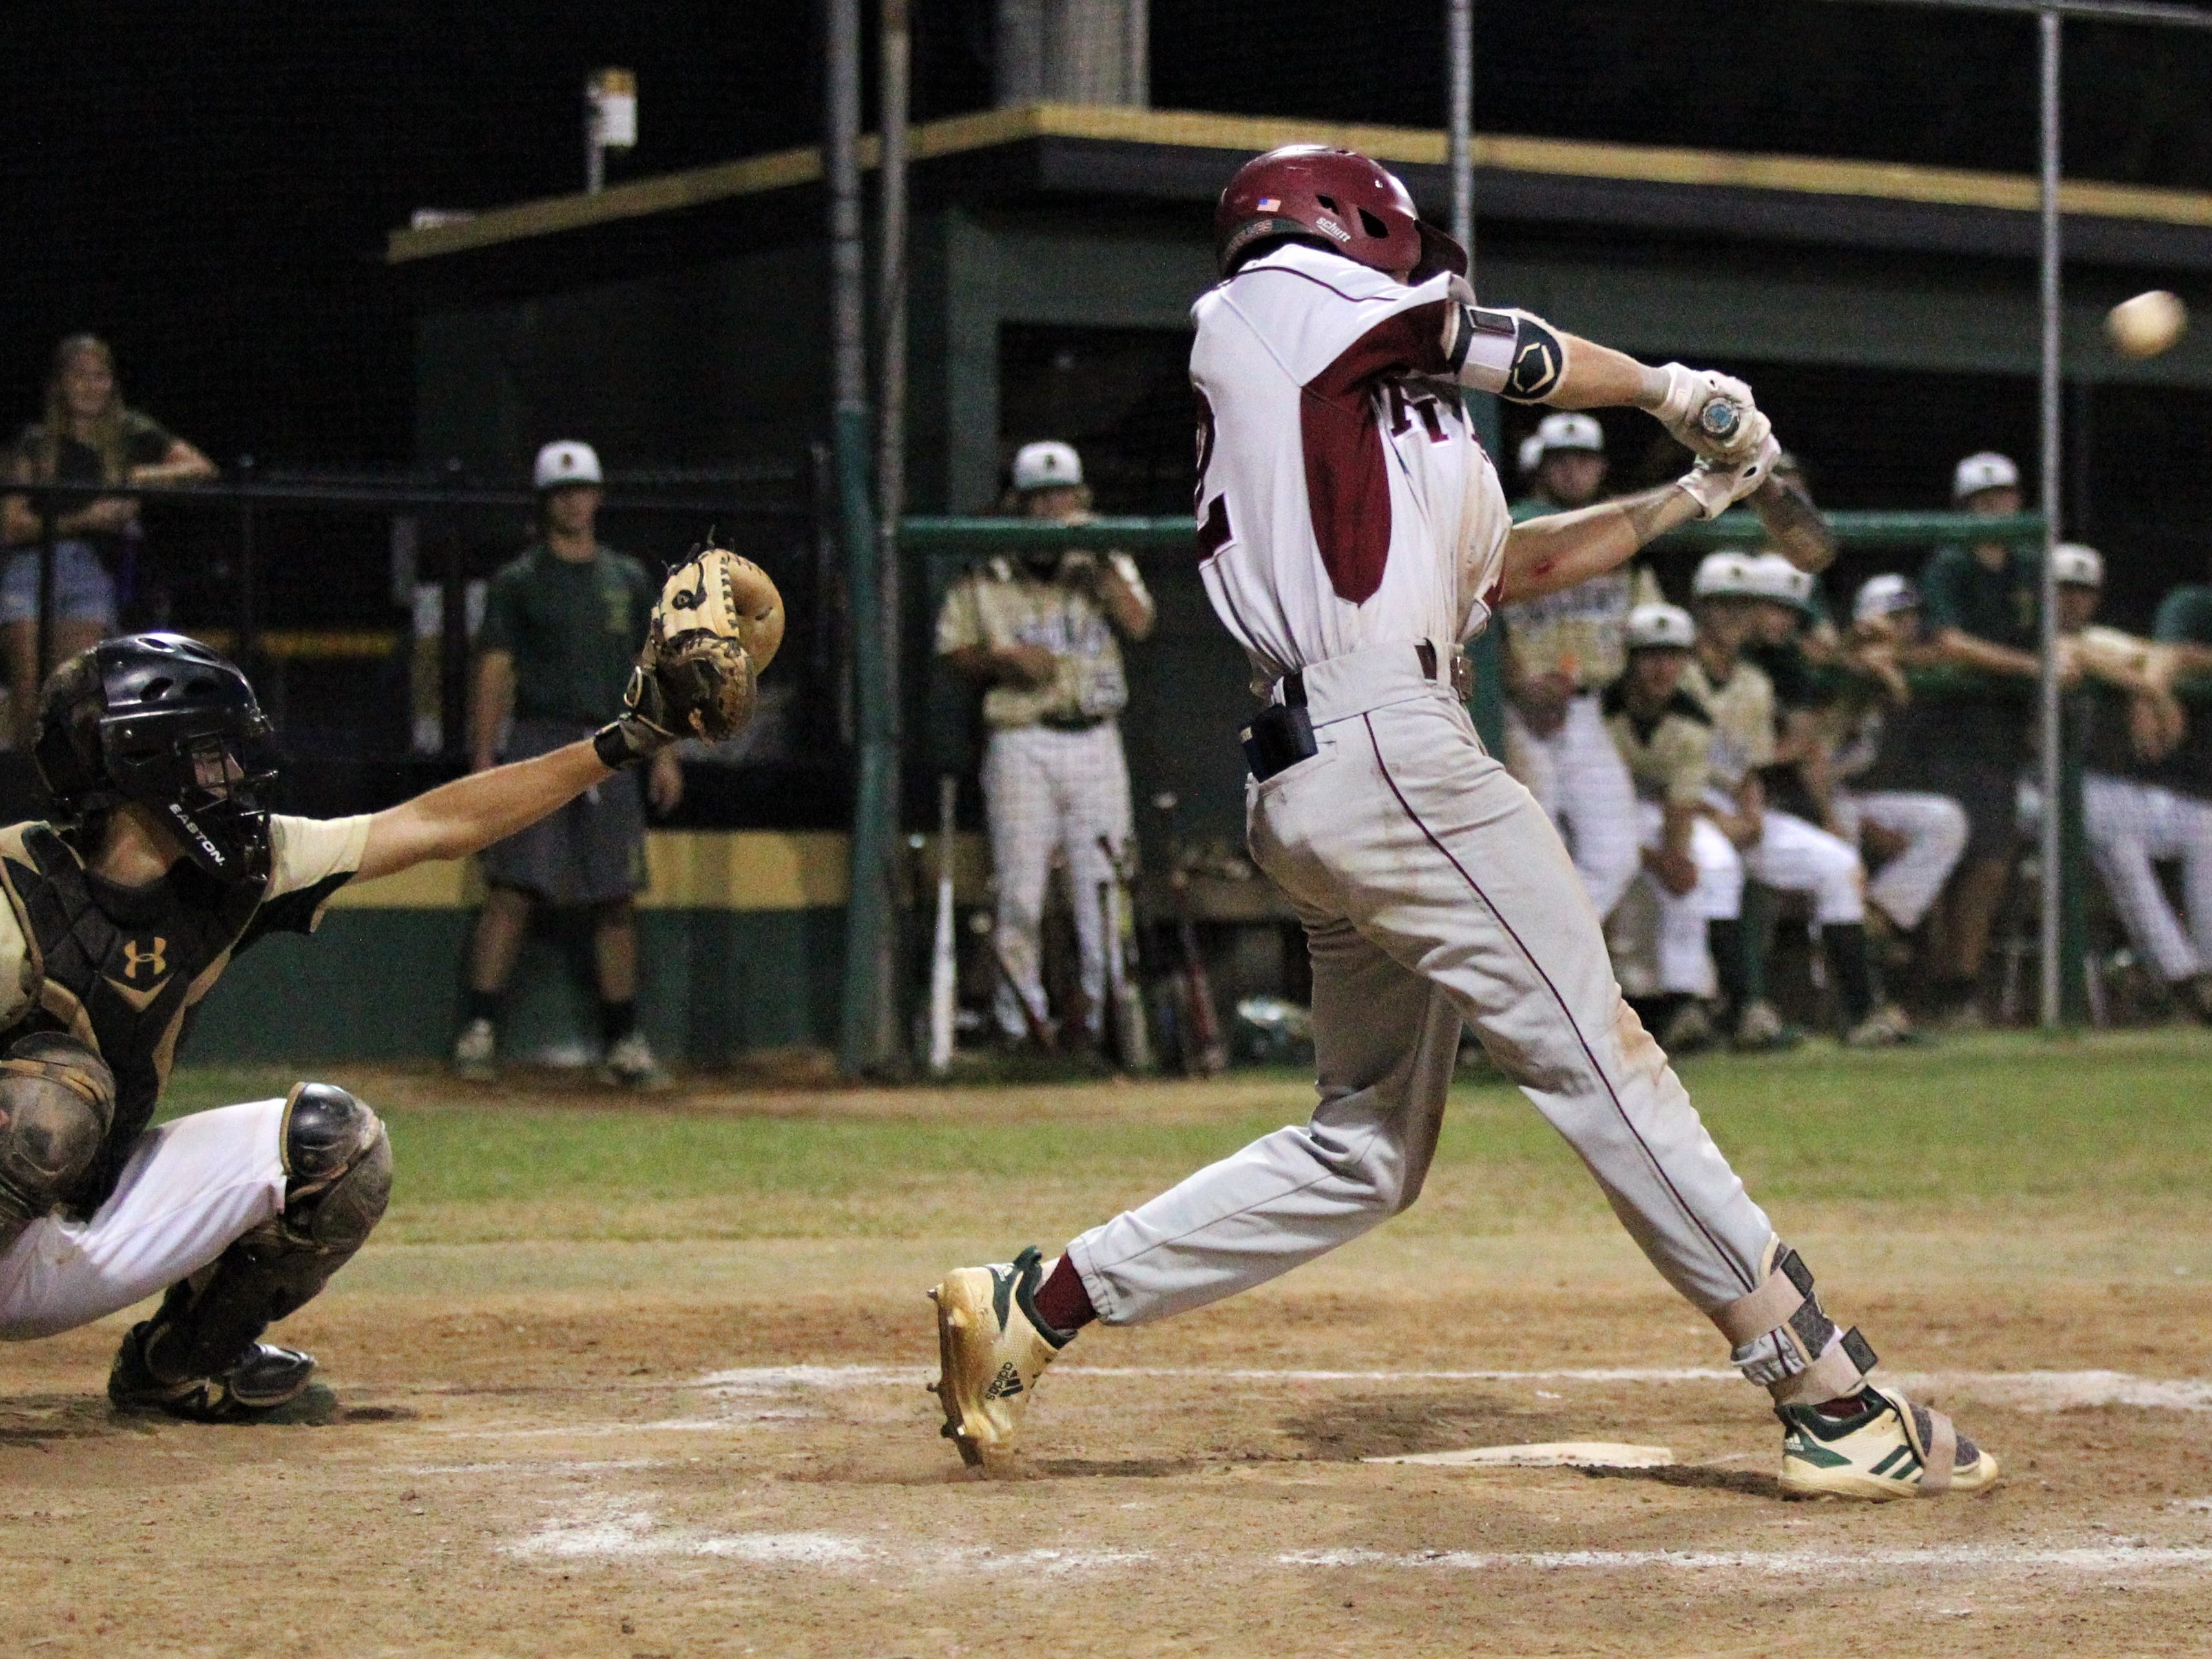 Chiles freshman Jaxson West drives a ball to center for a sac fly as Lincoln baseball beat Chiles 5-4  in 10 innings during a District 2-8A championship game on Thursday, May 9, 2019.